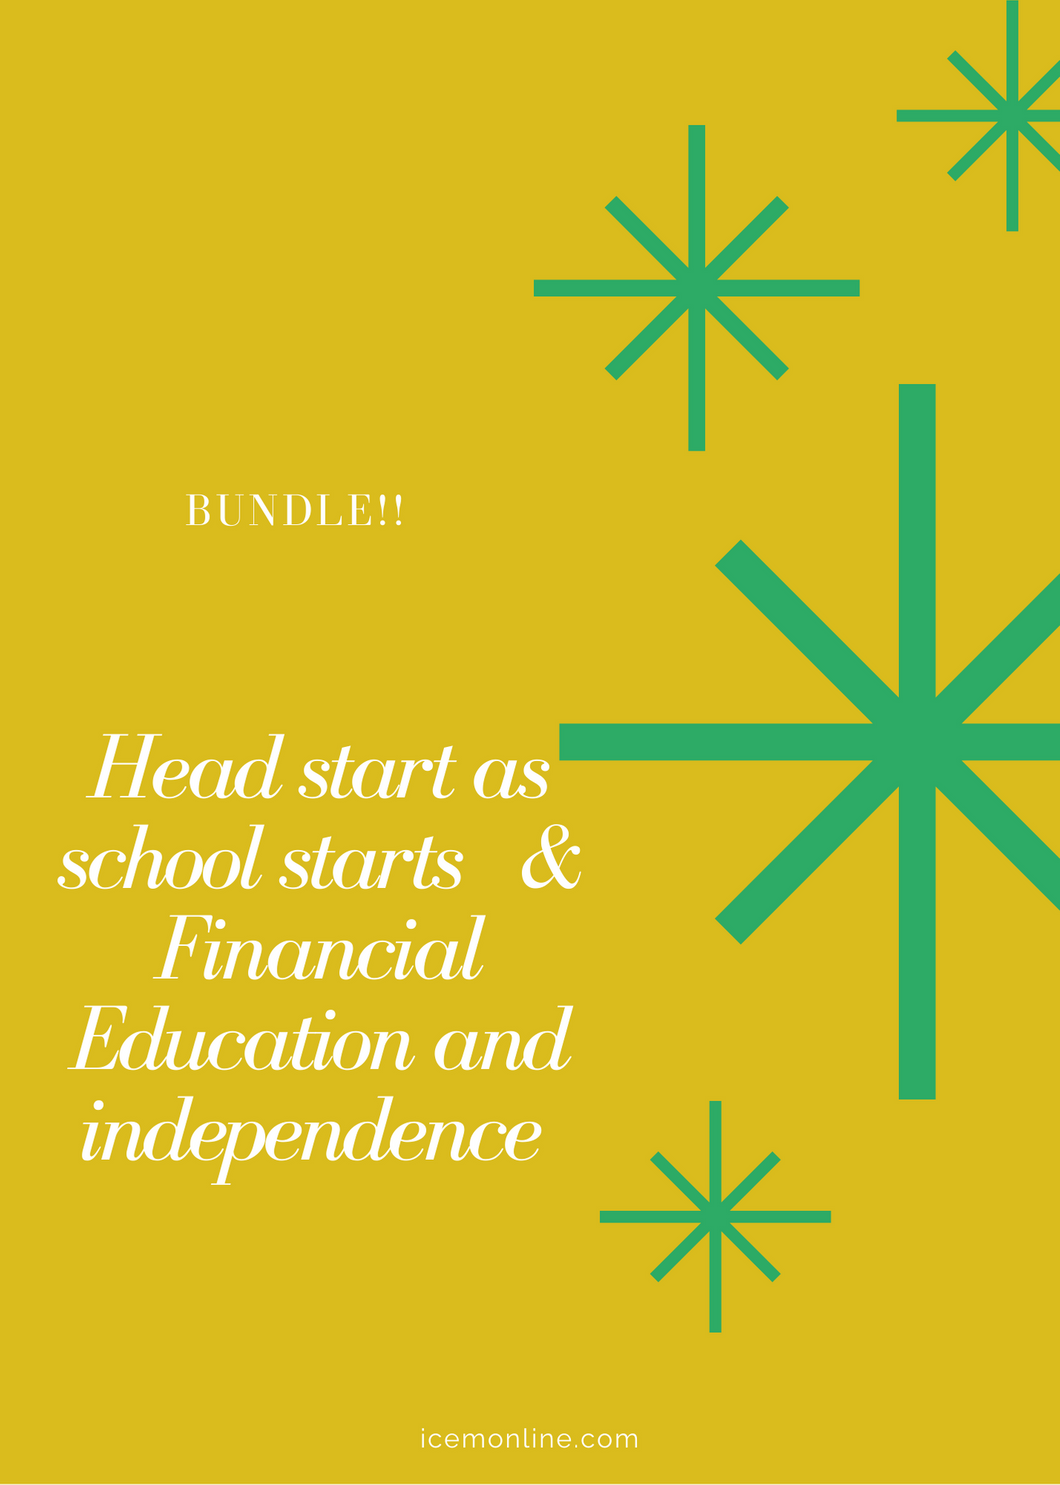 Bundle: Head start as school starts & Financial Education and Independence